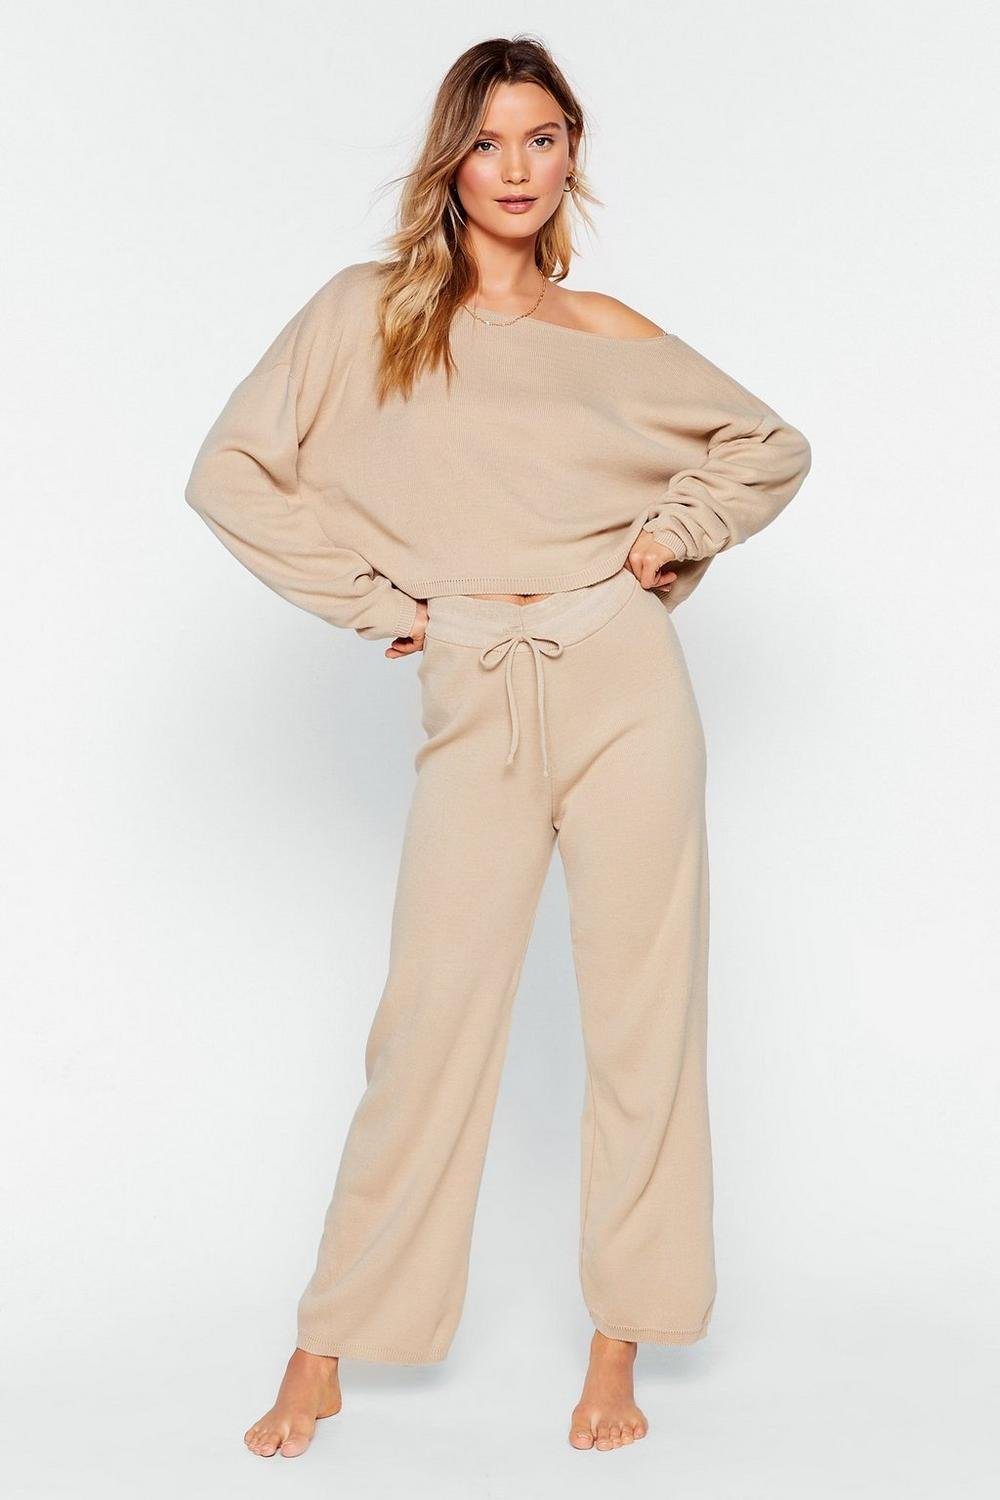 49a8976b99 Slow Down Jumper And Jogger Lounge Set   Shop Clothes at Nasty Gal!